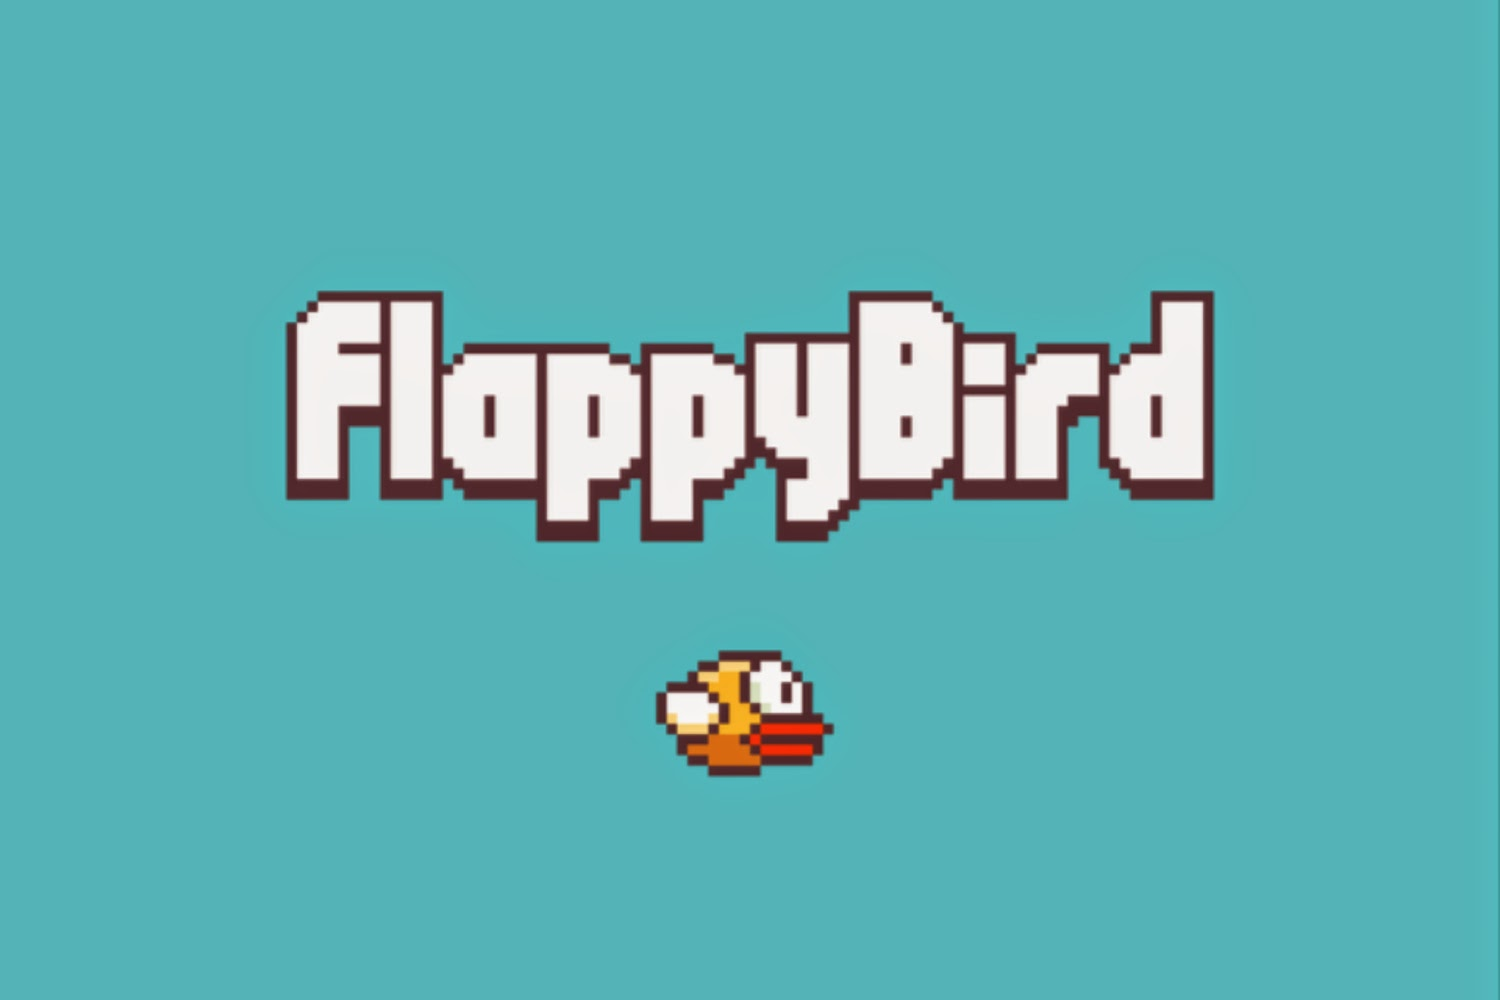 """""""Flappy Bird"""" is the most Search for Game of 2014, Google Says."""